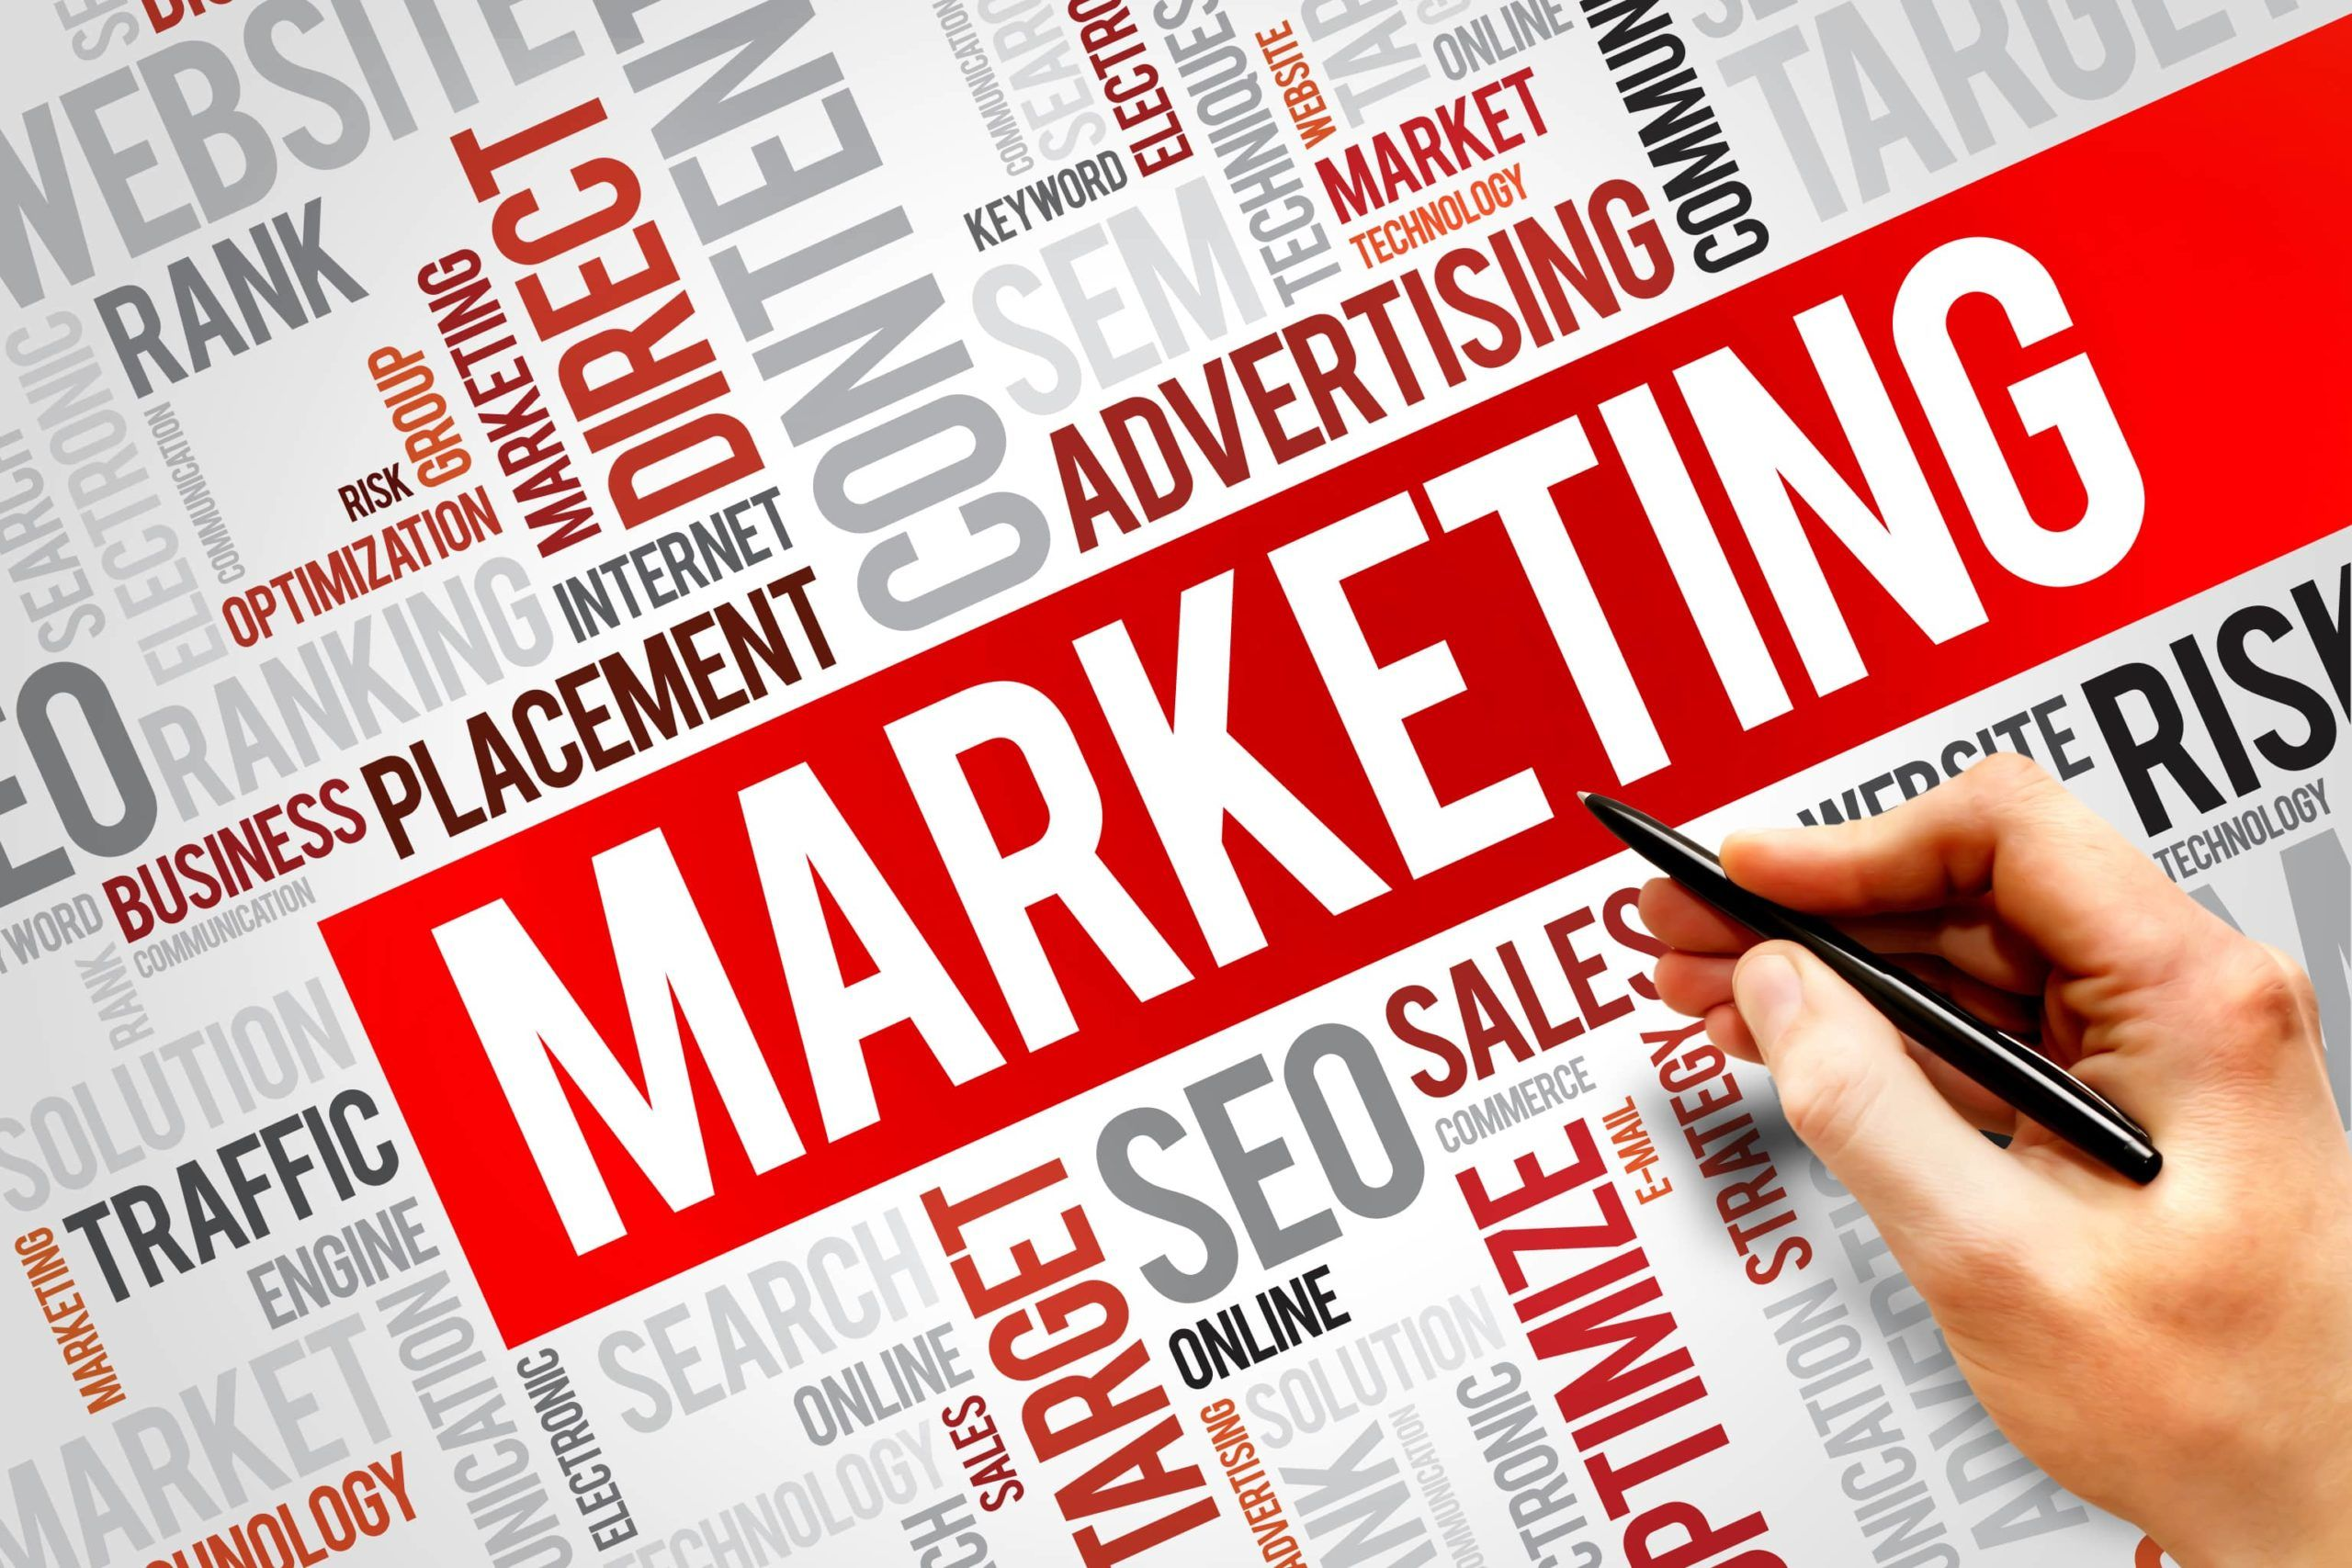 soluciones a problemas de marketing automatizado